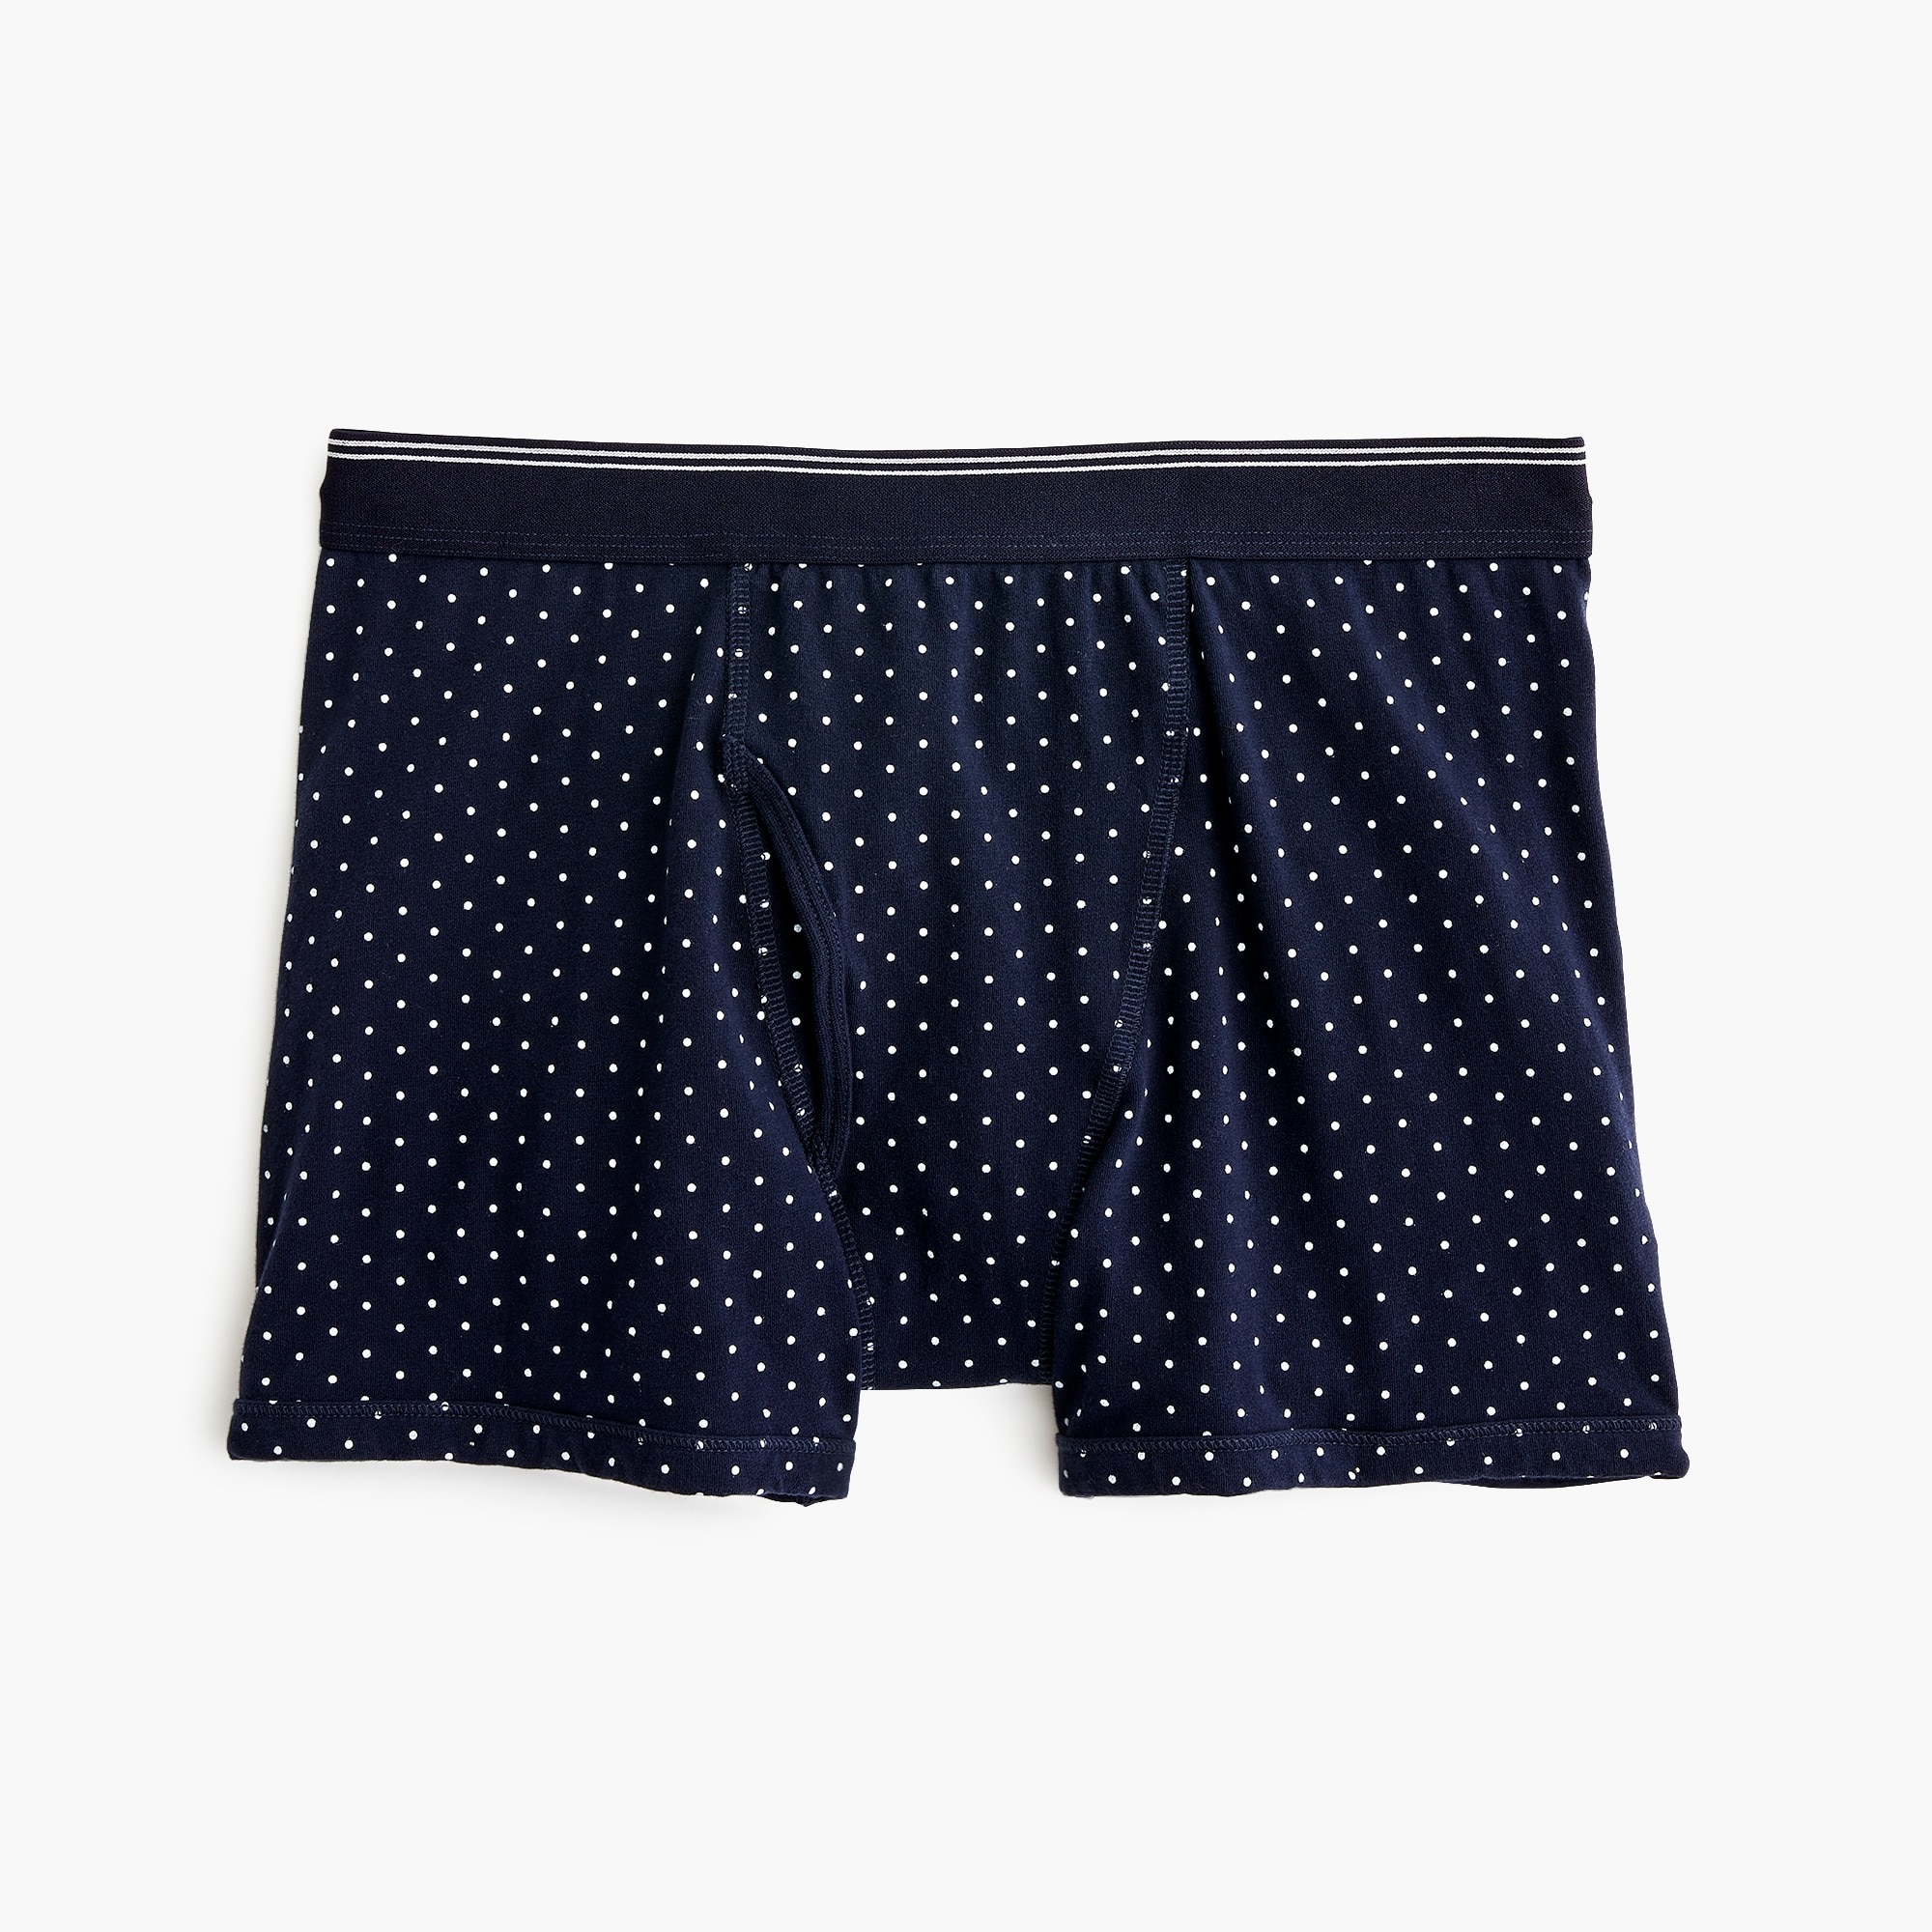 Image 1 for Stretch dotted boxer briefs